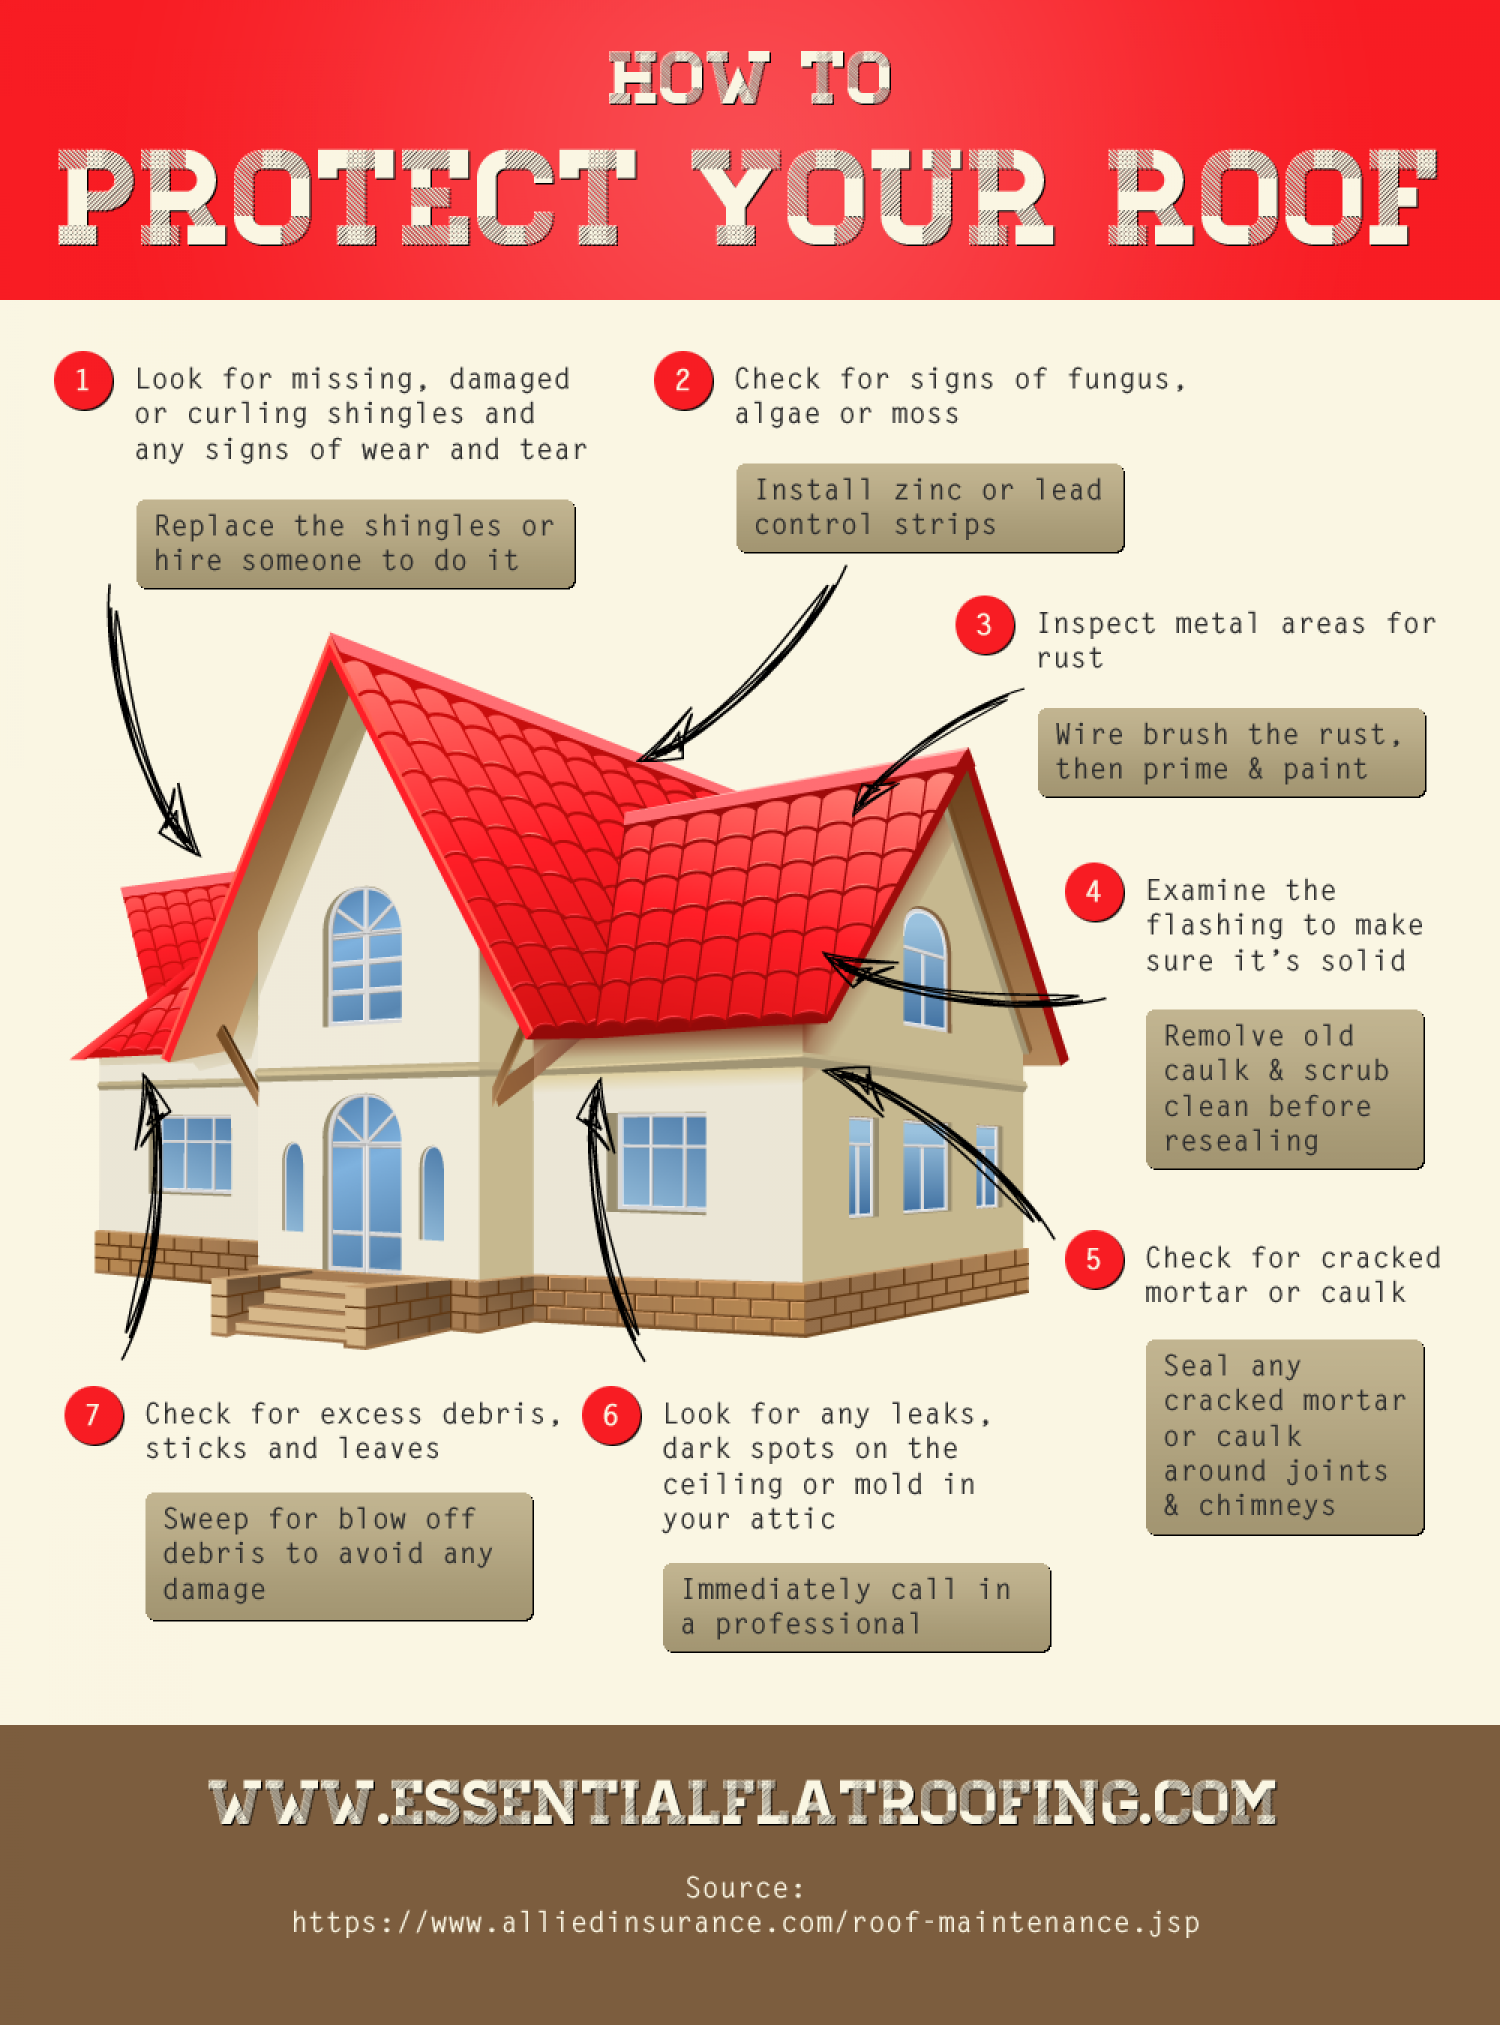 how-to-protect-your-roof_52fad539500be_w